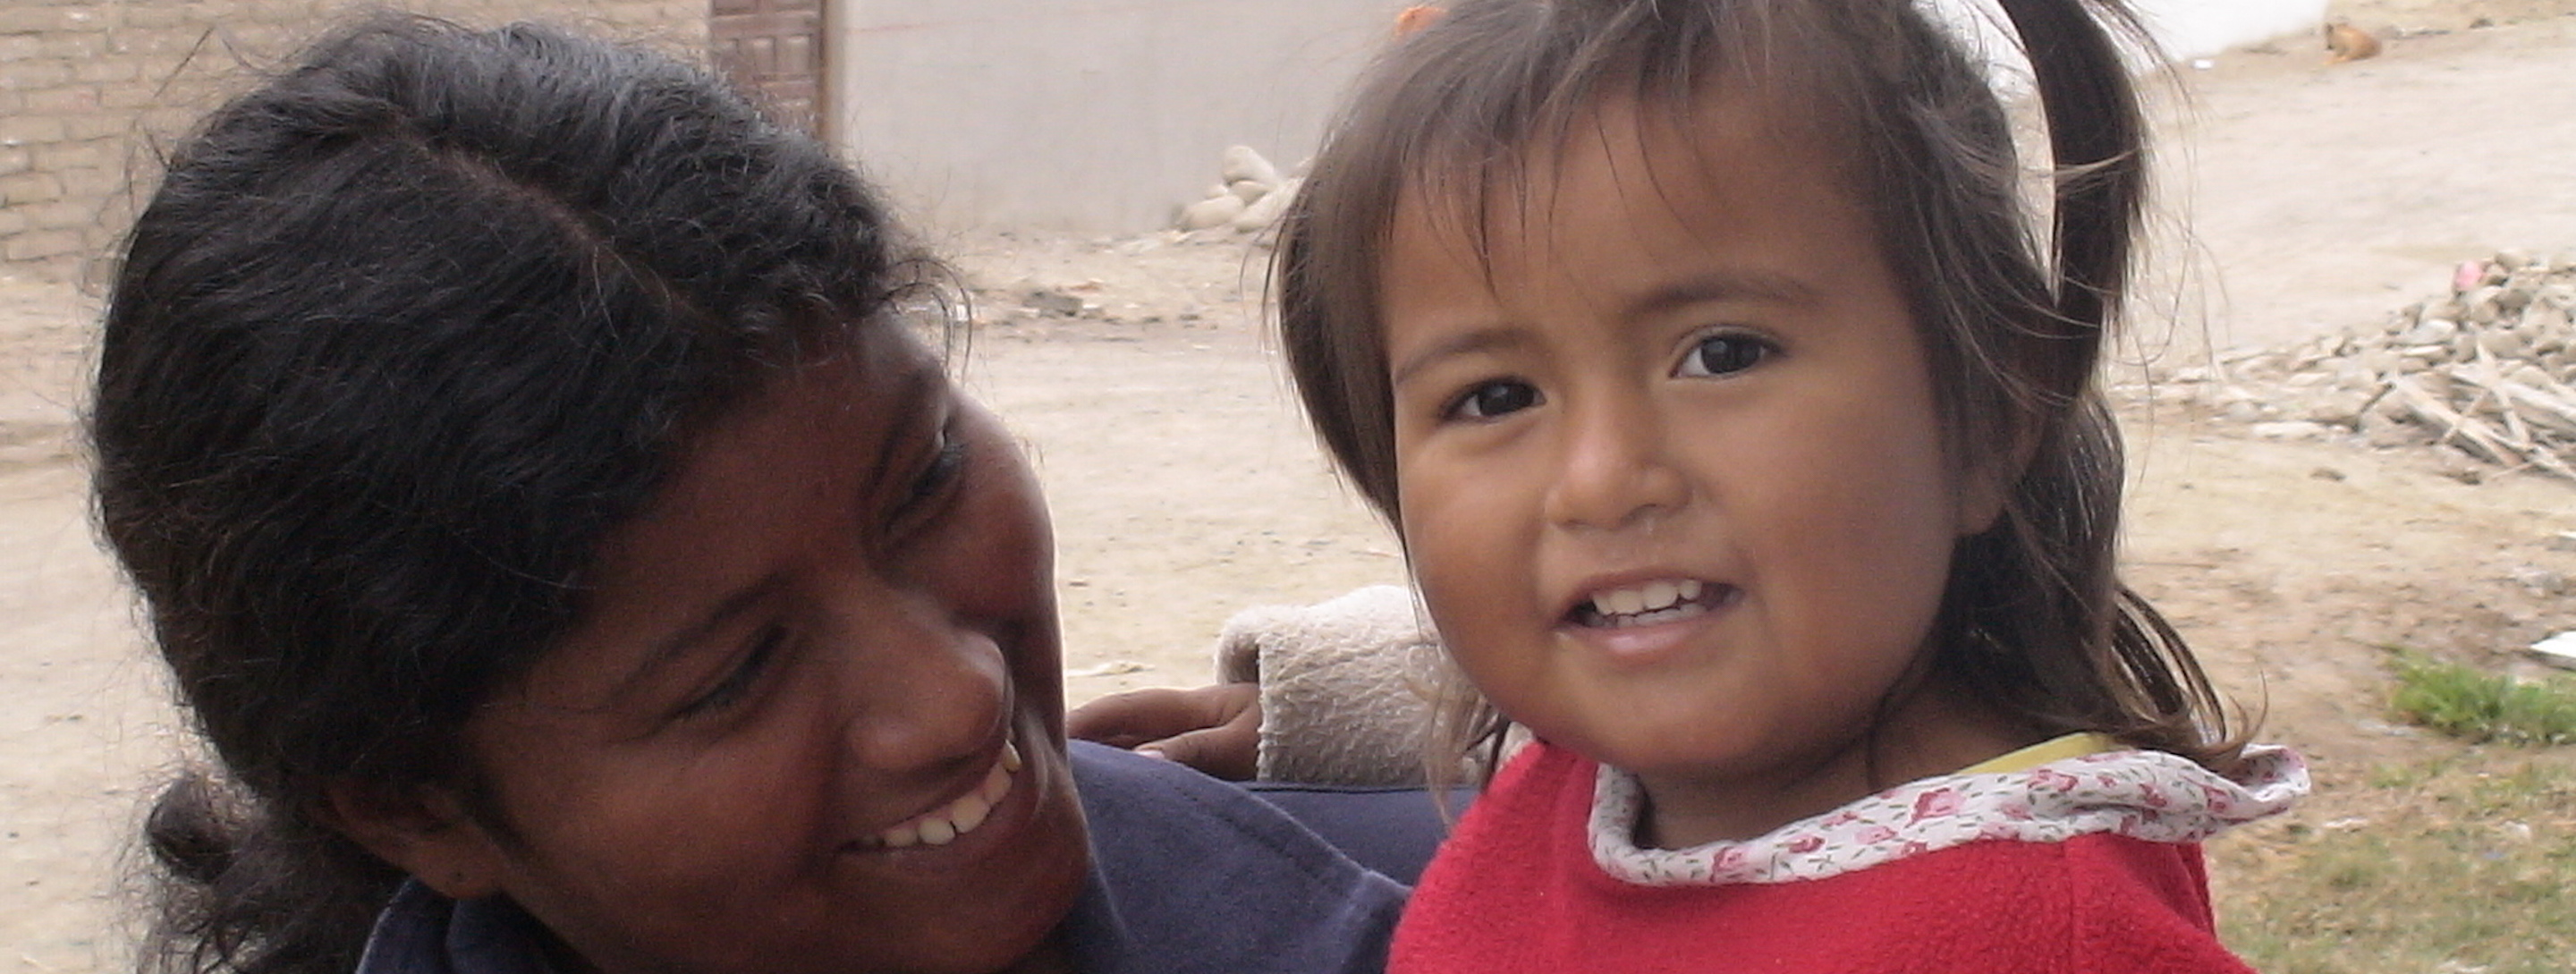 young peruvian girl with mother